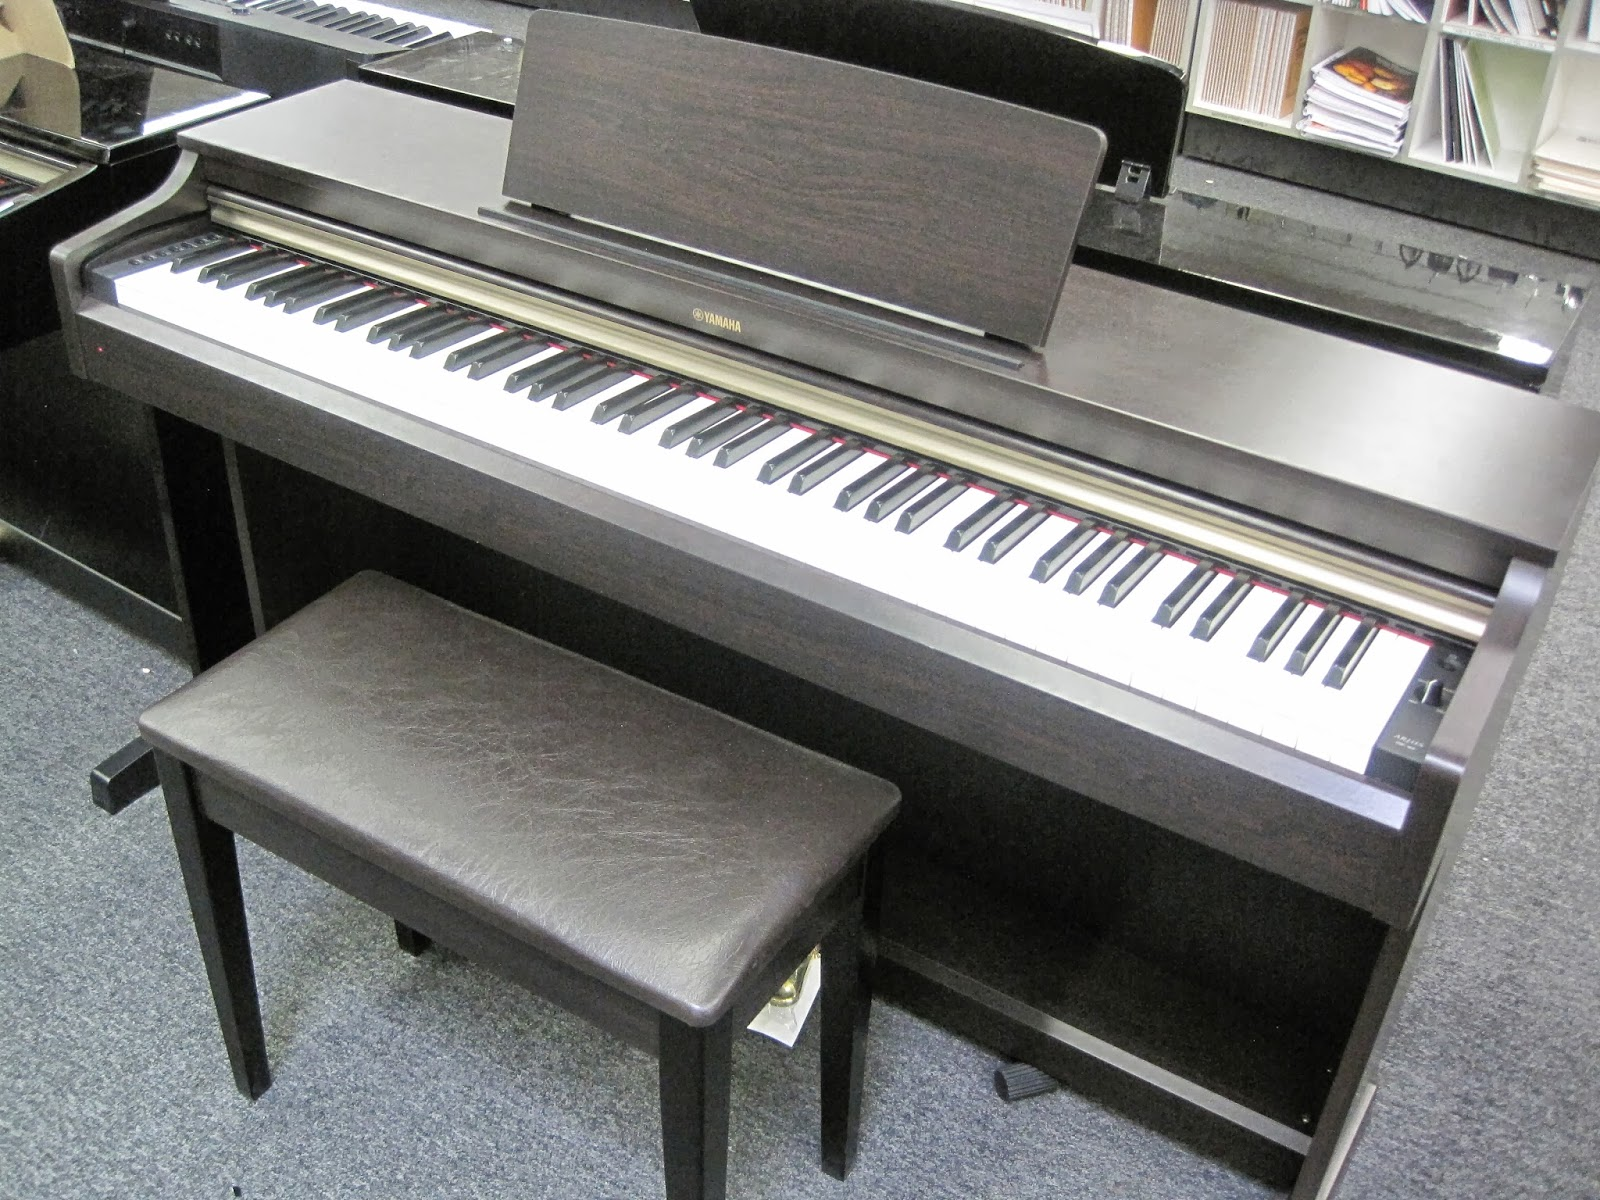 az piano reviews review yamaha ydp142 ydp162 ydps51 digital pianos recommended very. Black Bedroom Furniture Sets. Home Design Ideas